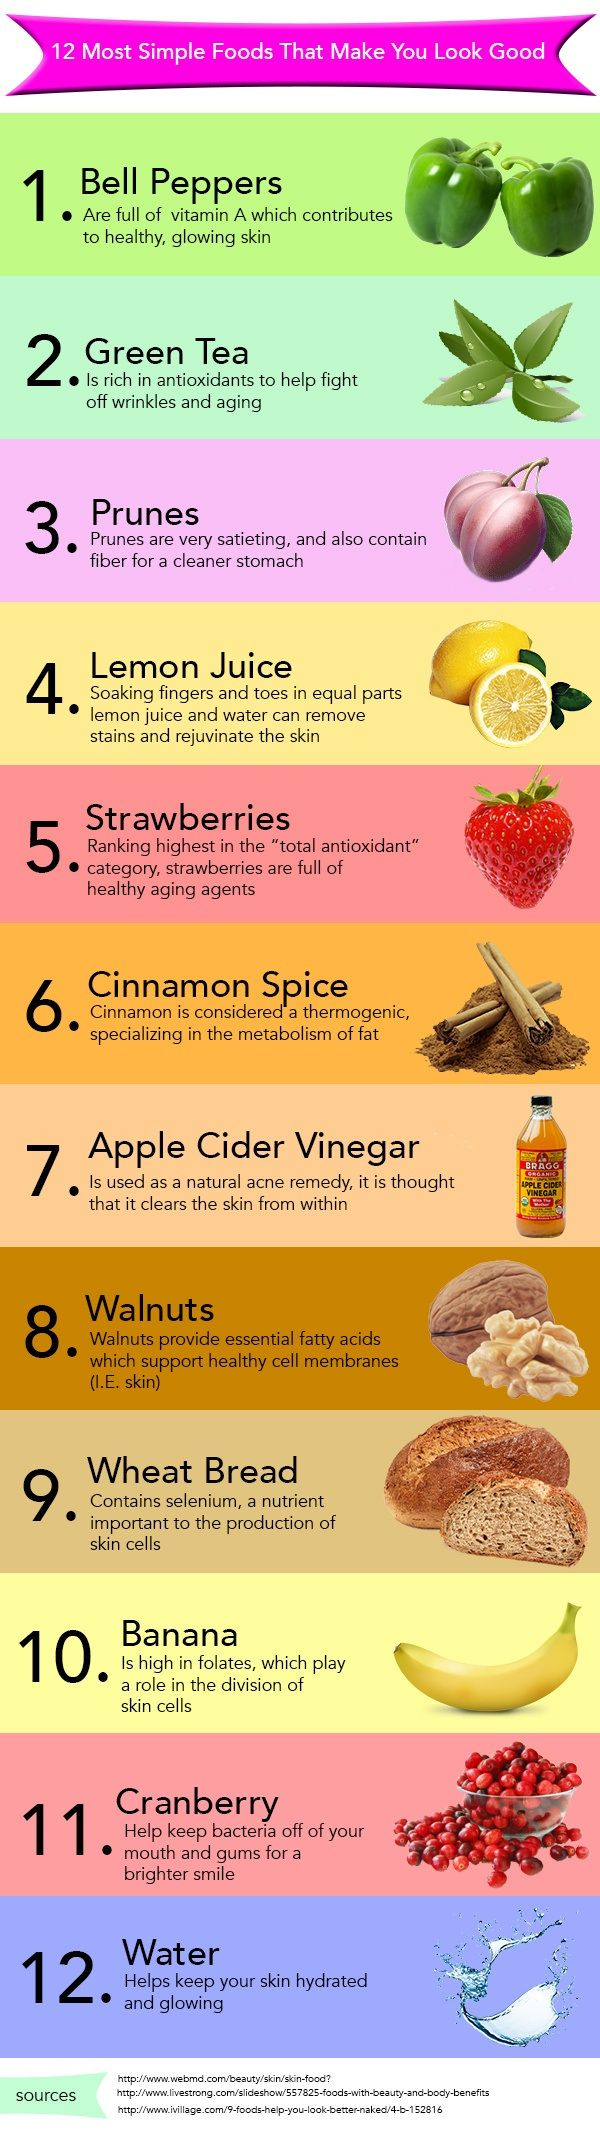 Best 10 Most Healthy Foods Ideas On Pinterest Food Cravings intended for food items good for health intended for your reference